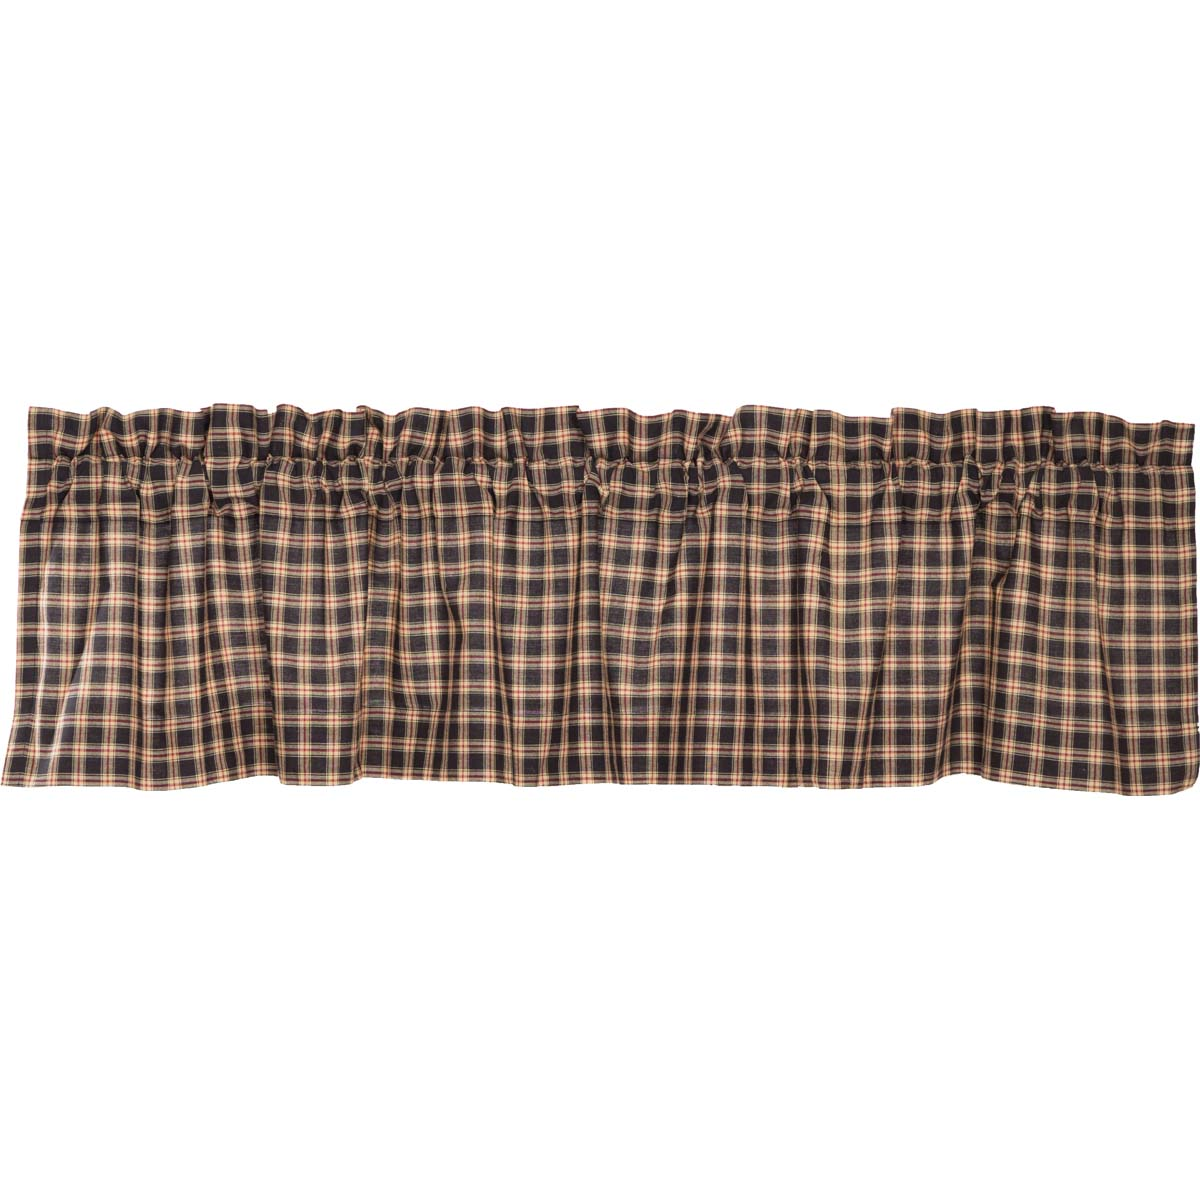 Bingham Star Valance Plaid 16x72